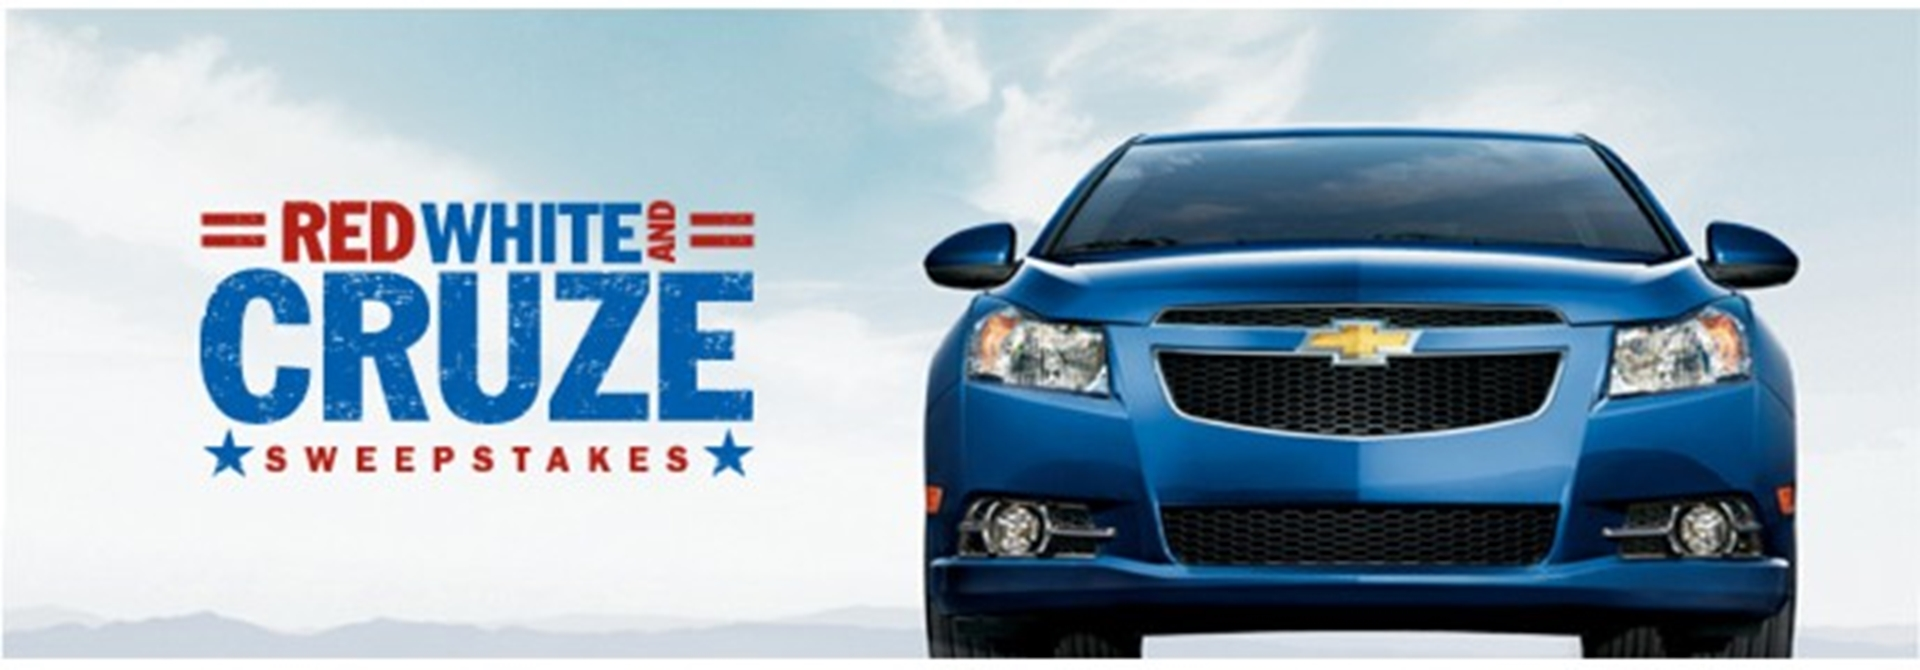 Military Cruze Sweepstakes